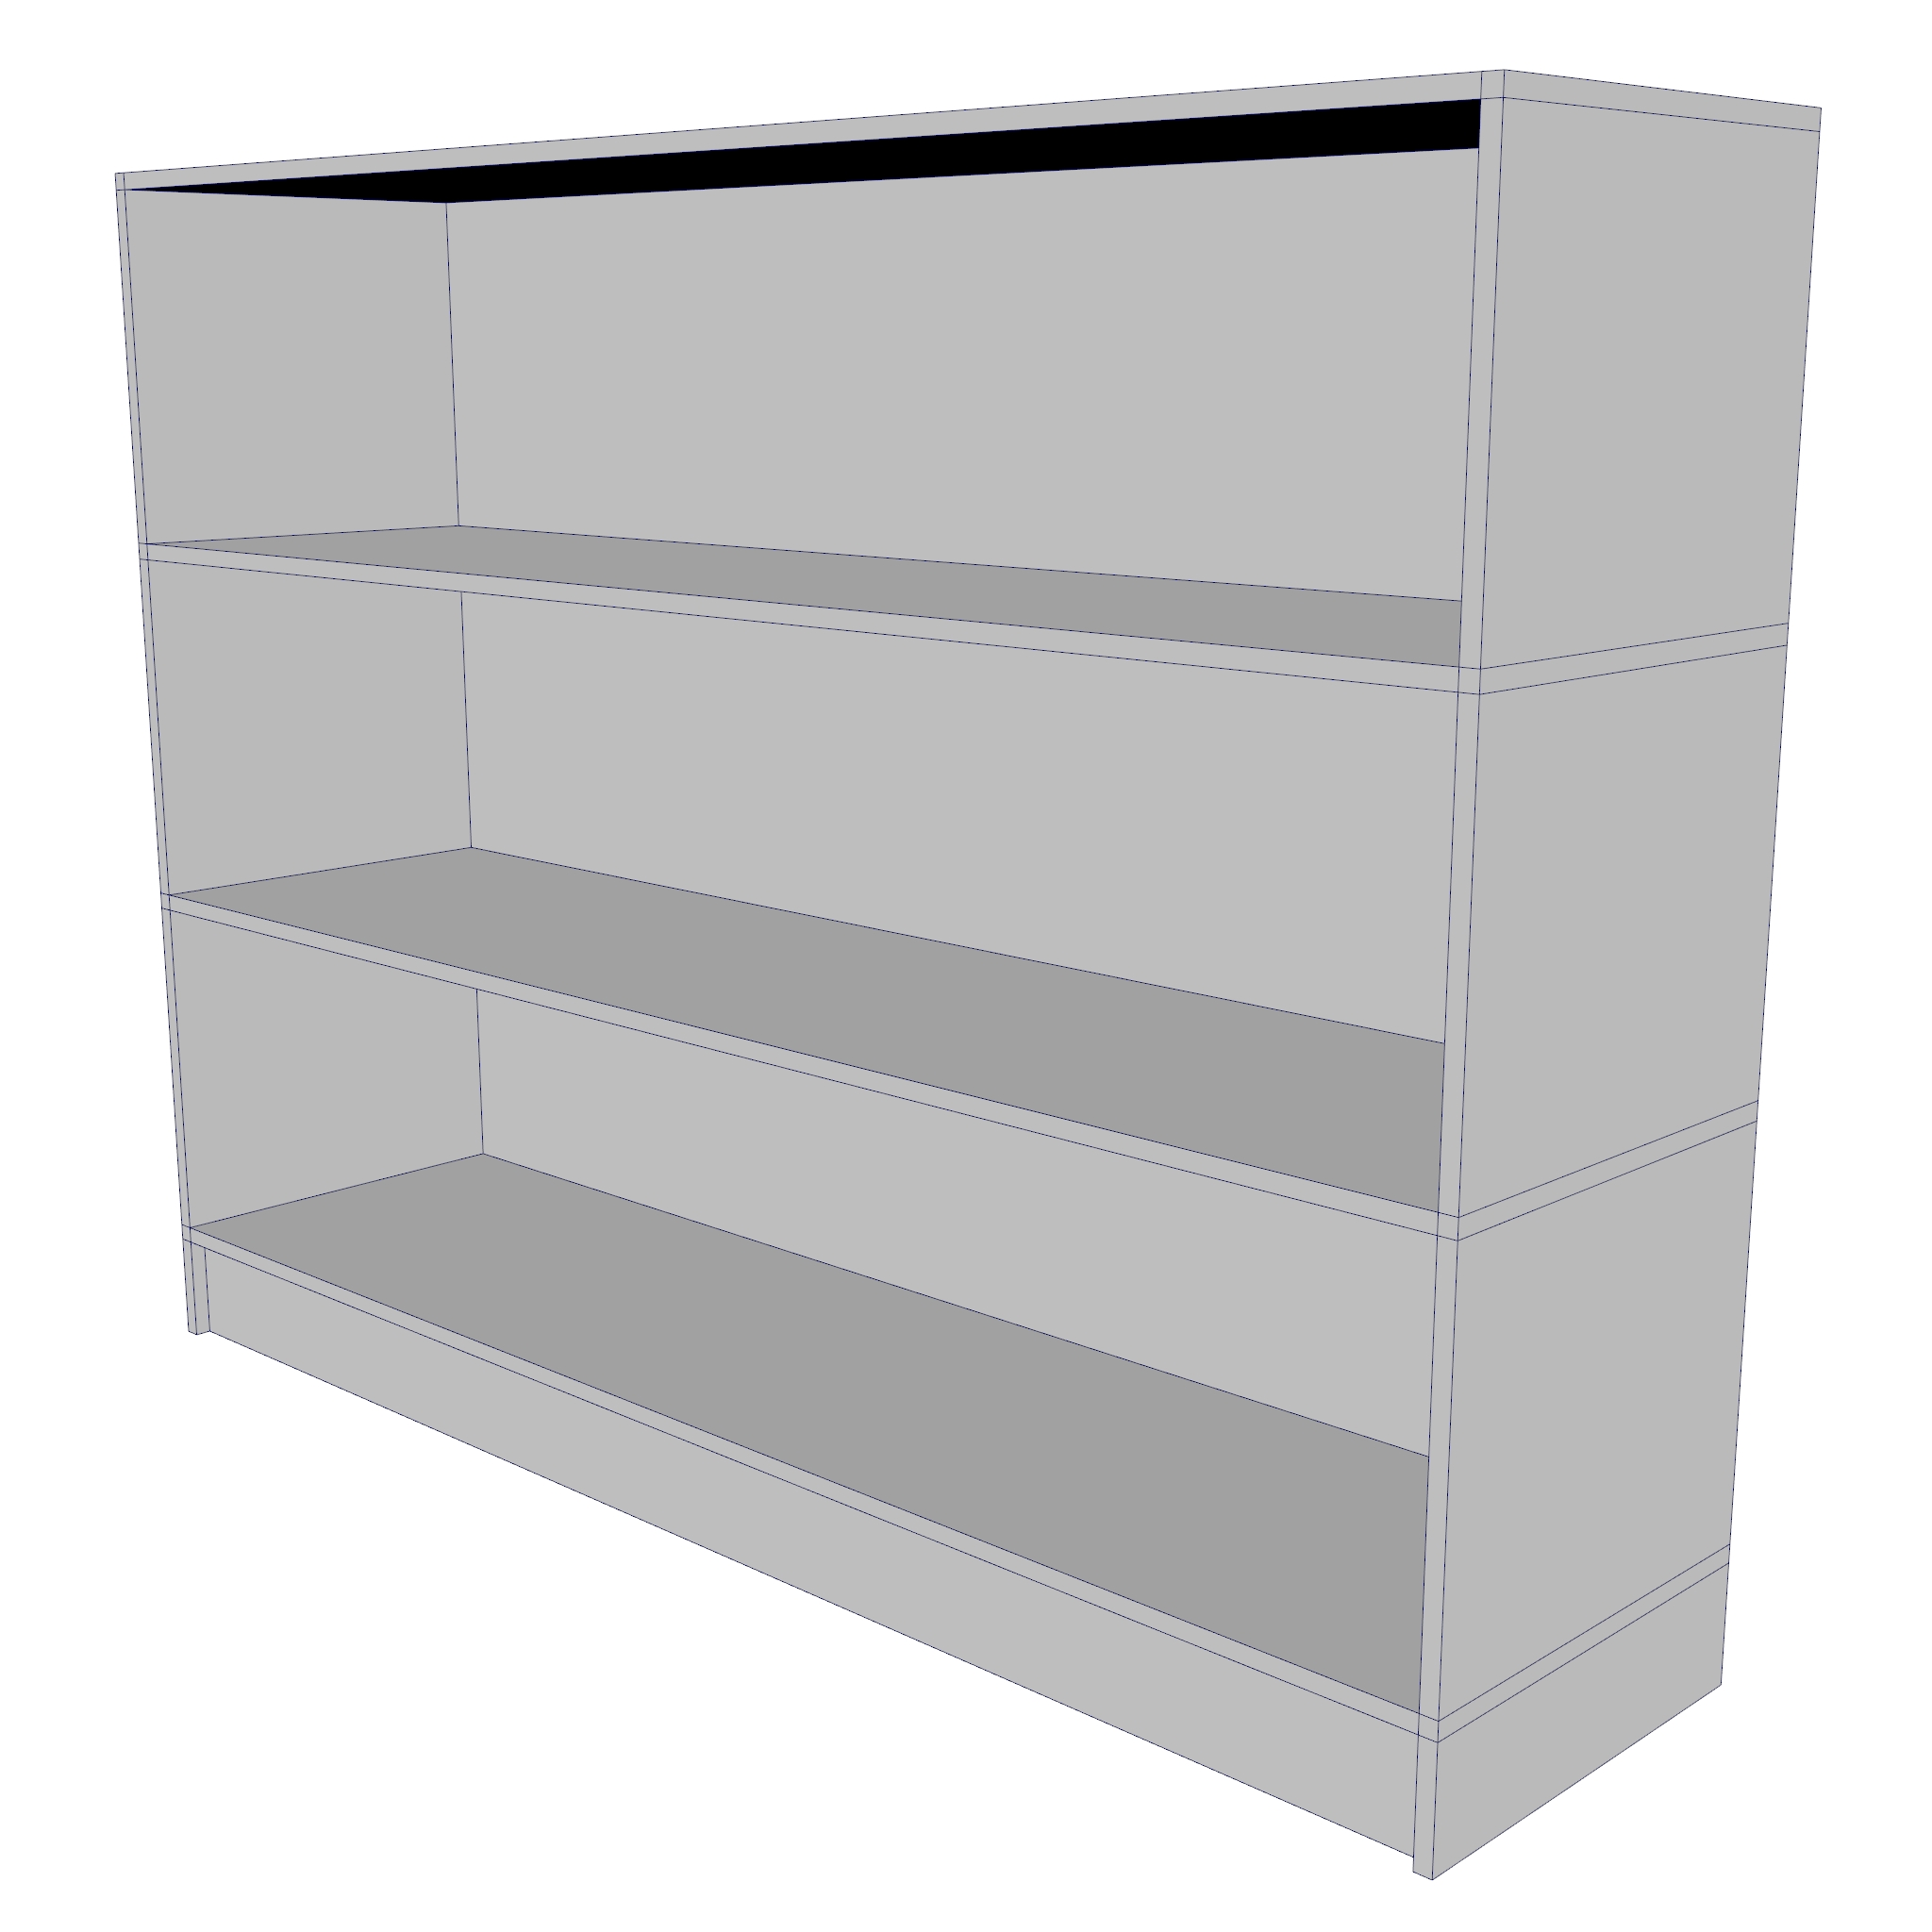 bookcase – two sizes 3d model 3ds fbx ma mb obj 271543